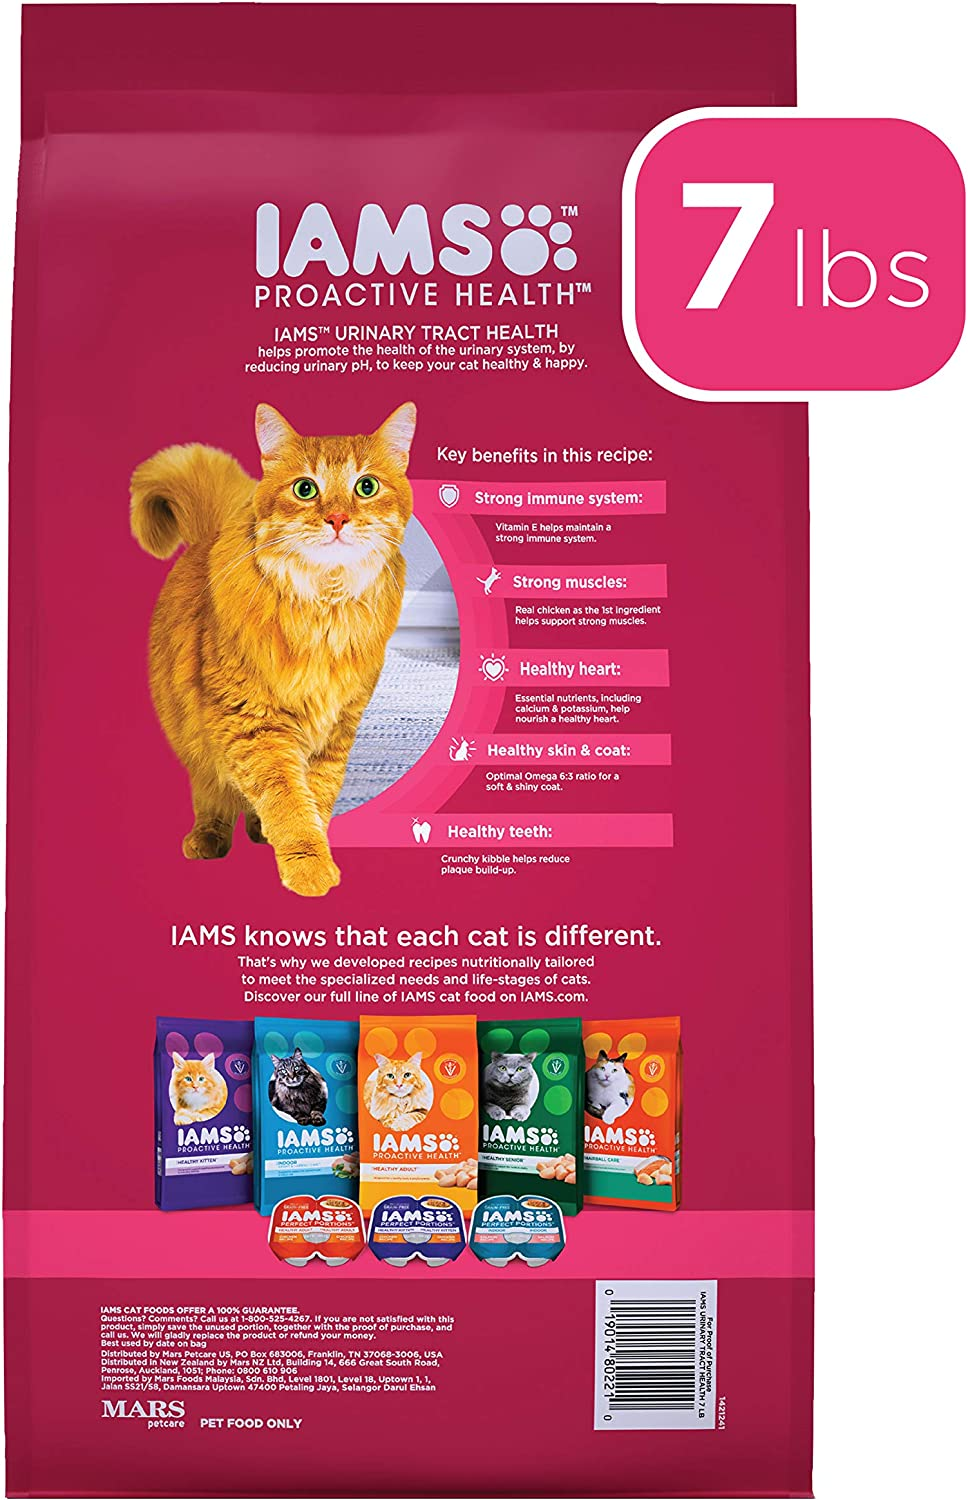 Amazon Com Iams Proactive Health Adult Urinary Tract Health Dry Cat Food With Chicken Cat Kibble 7 Lb Bag Pet Supplies